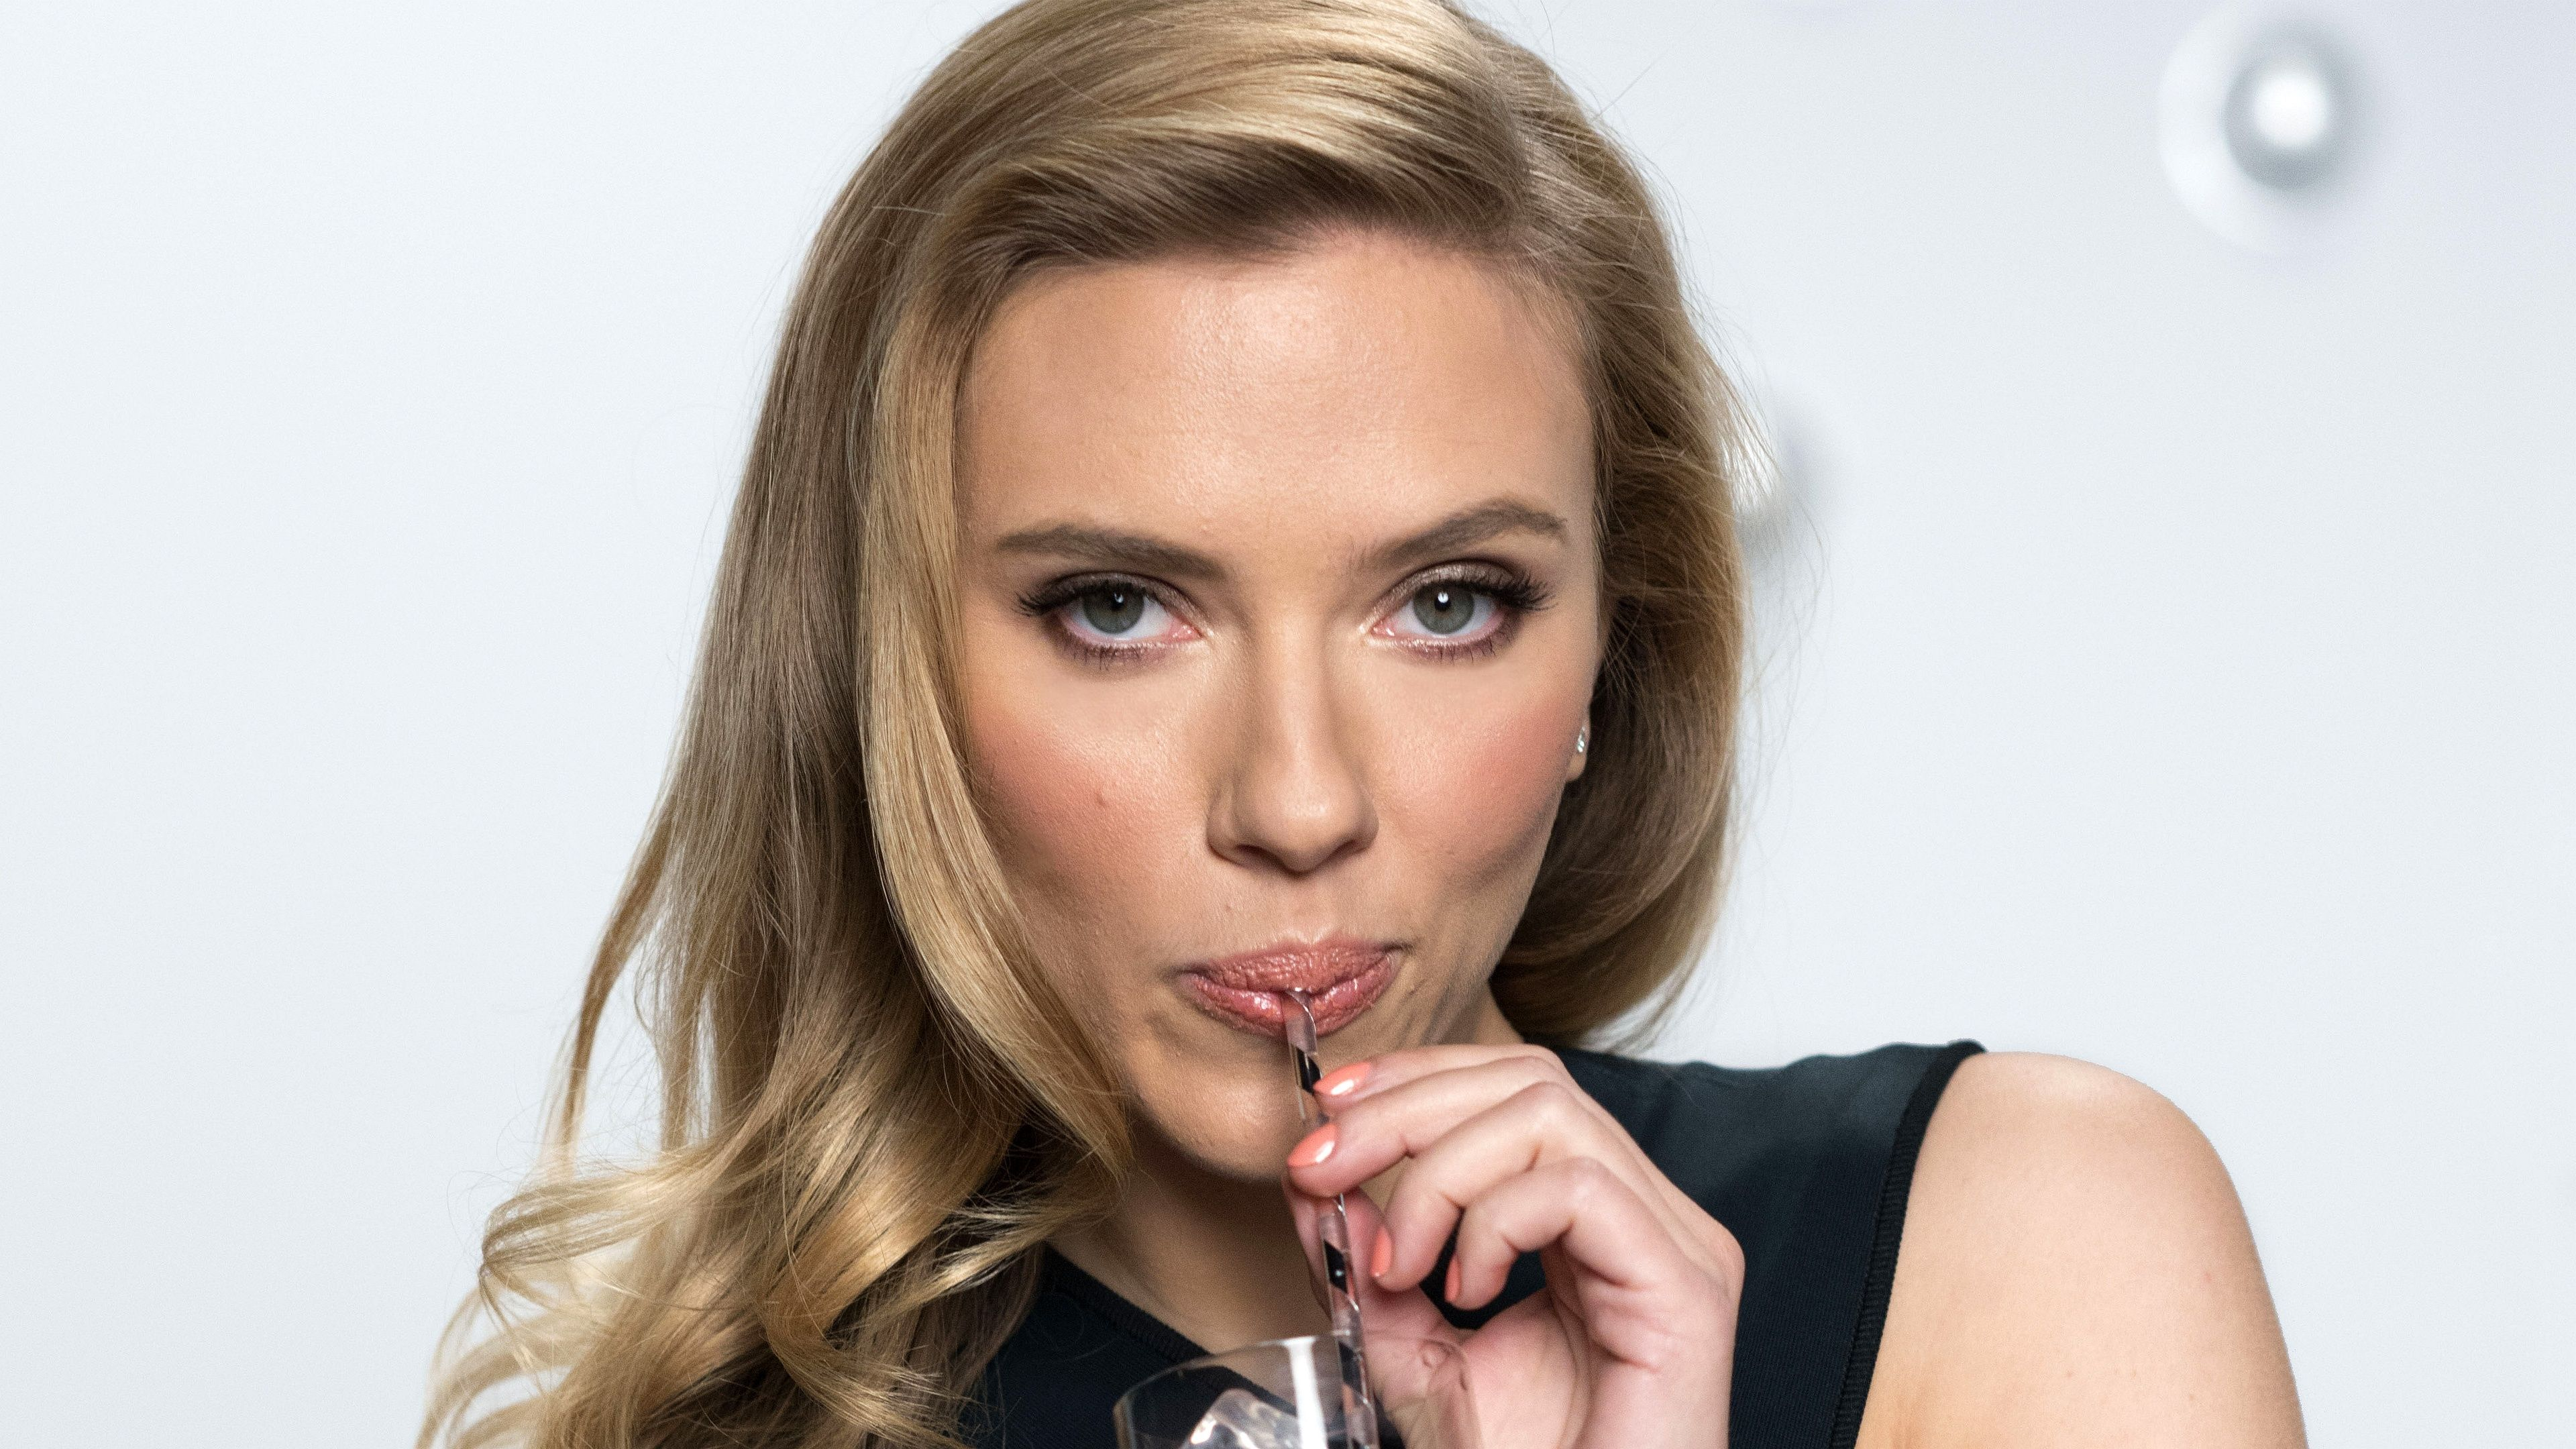 Wallpapers Collection «Scarlett Johansson Wallpapers